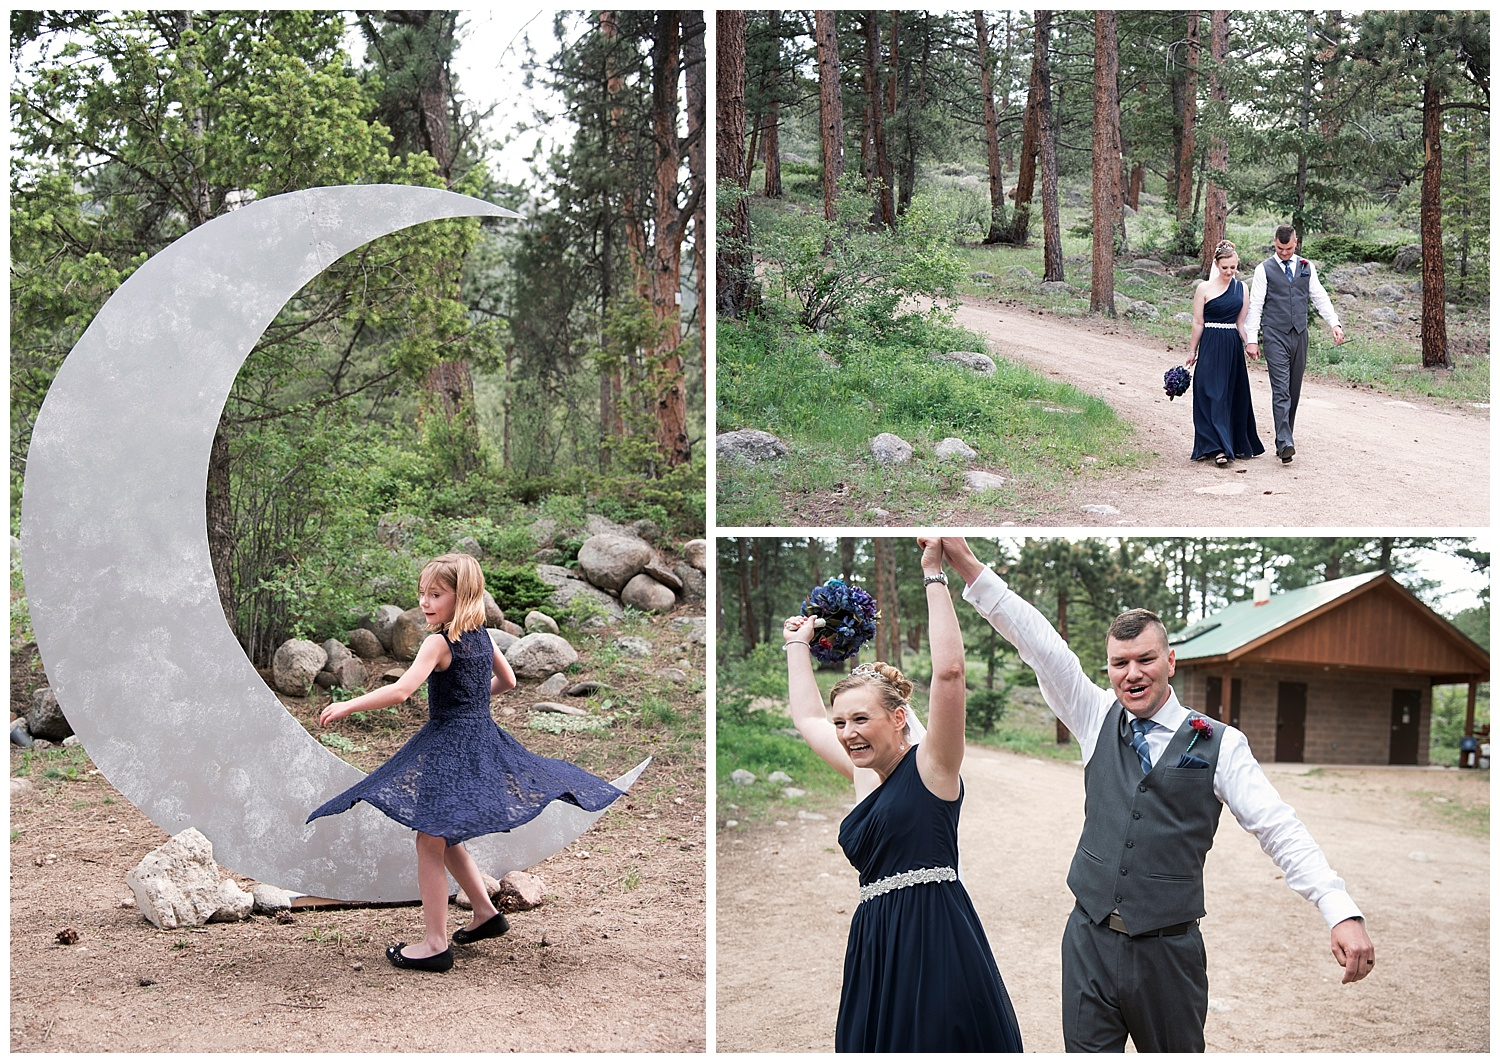 Adventure_Colorado_Wedding_Photographer_Intimate_Weddings_Photography_004.jpg